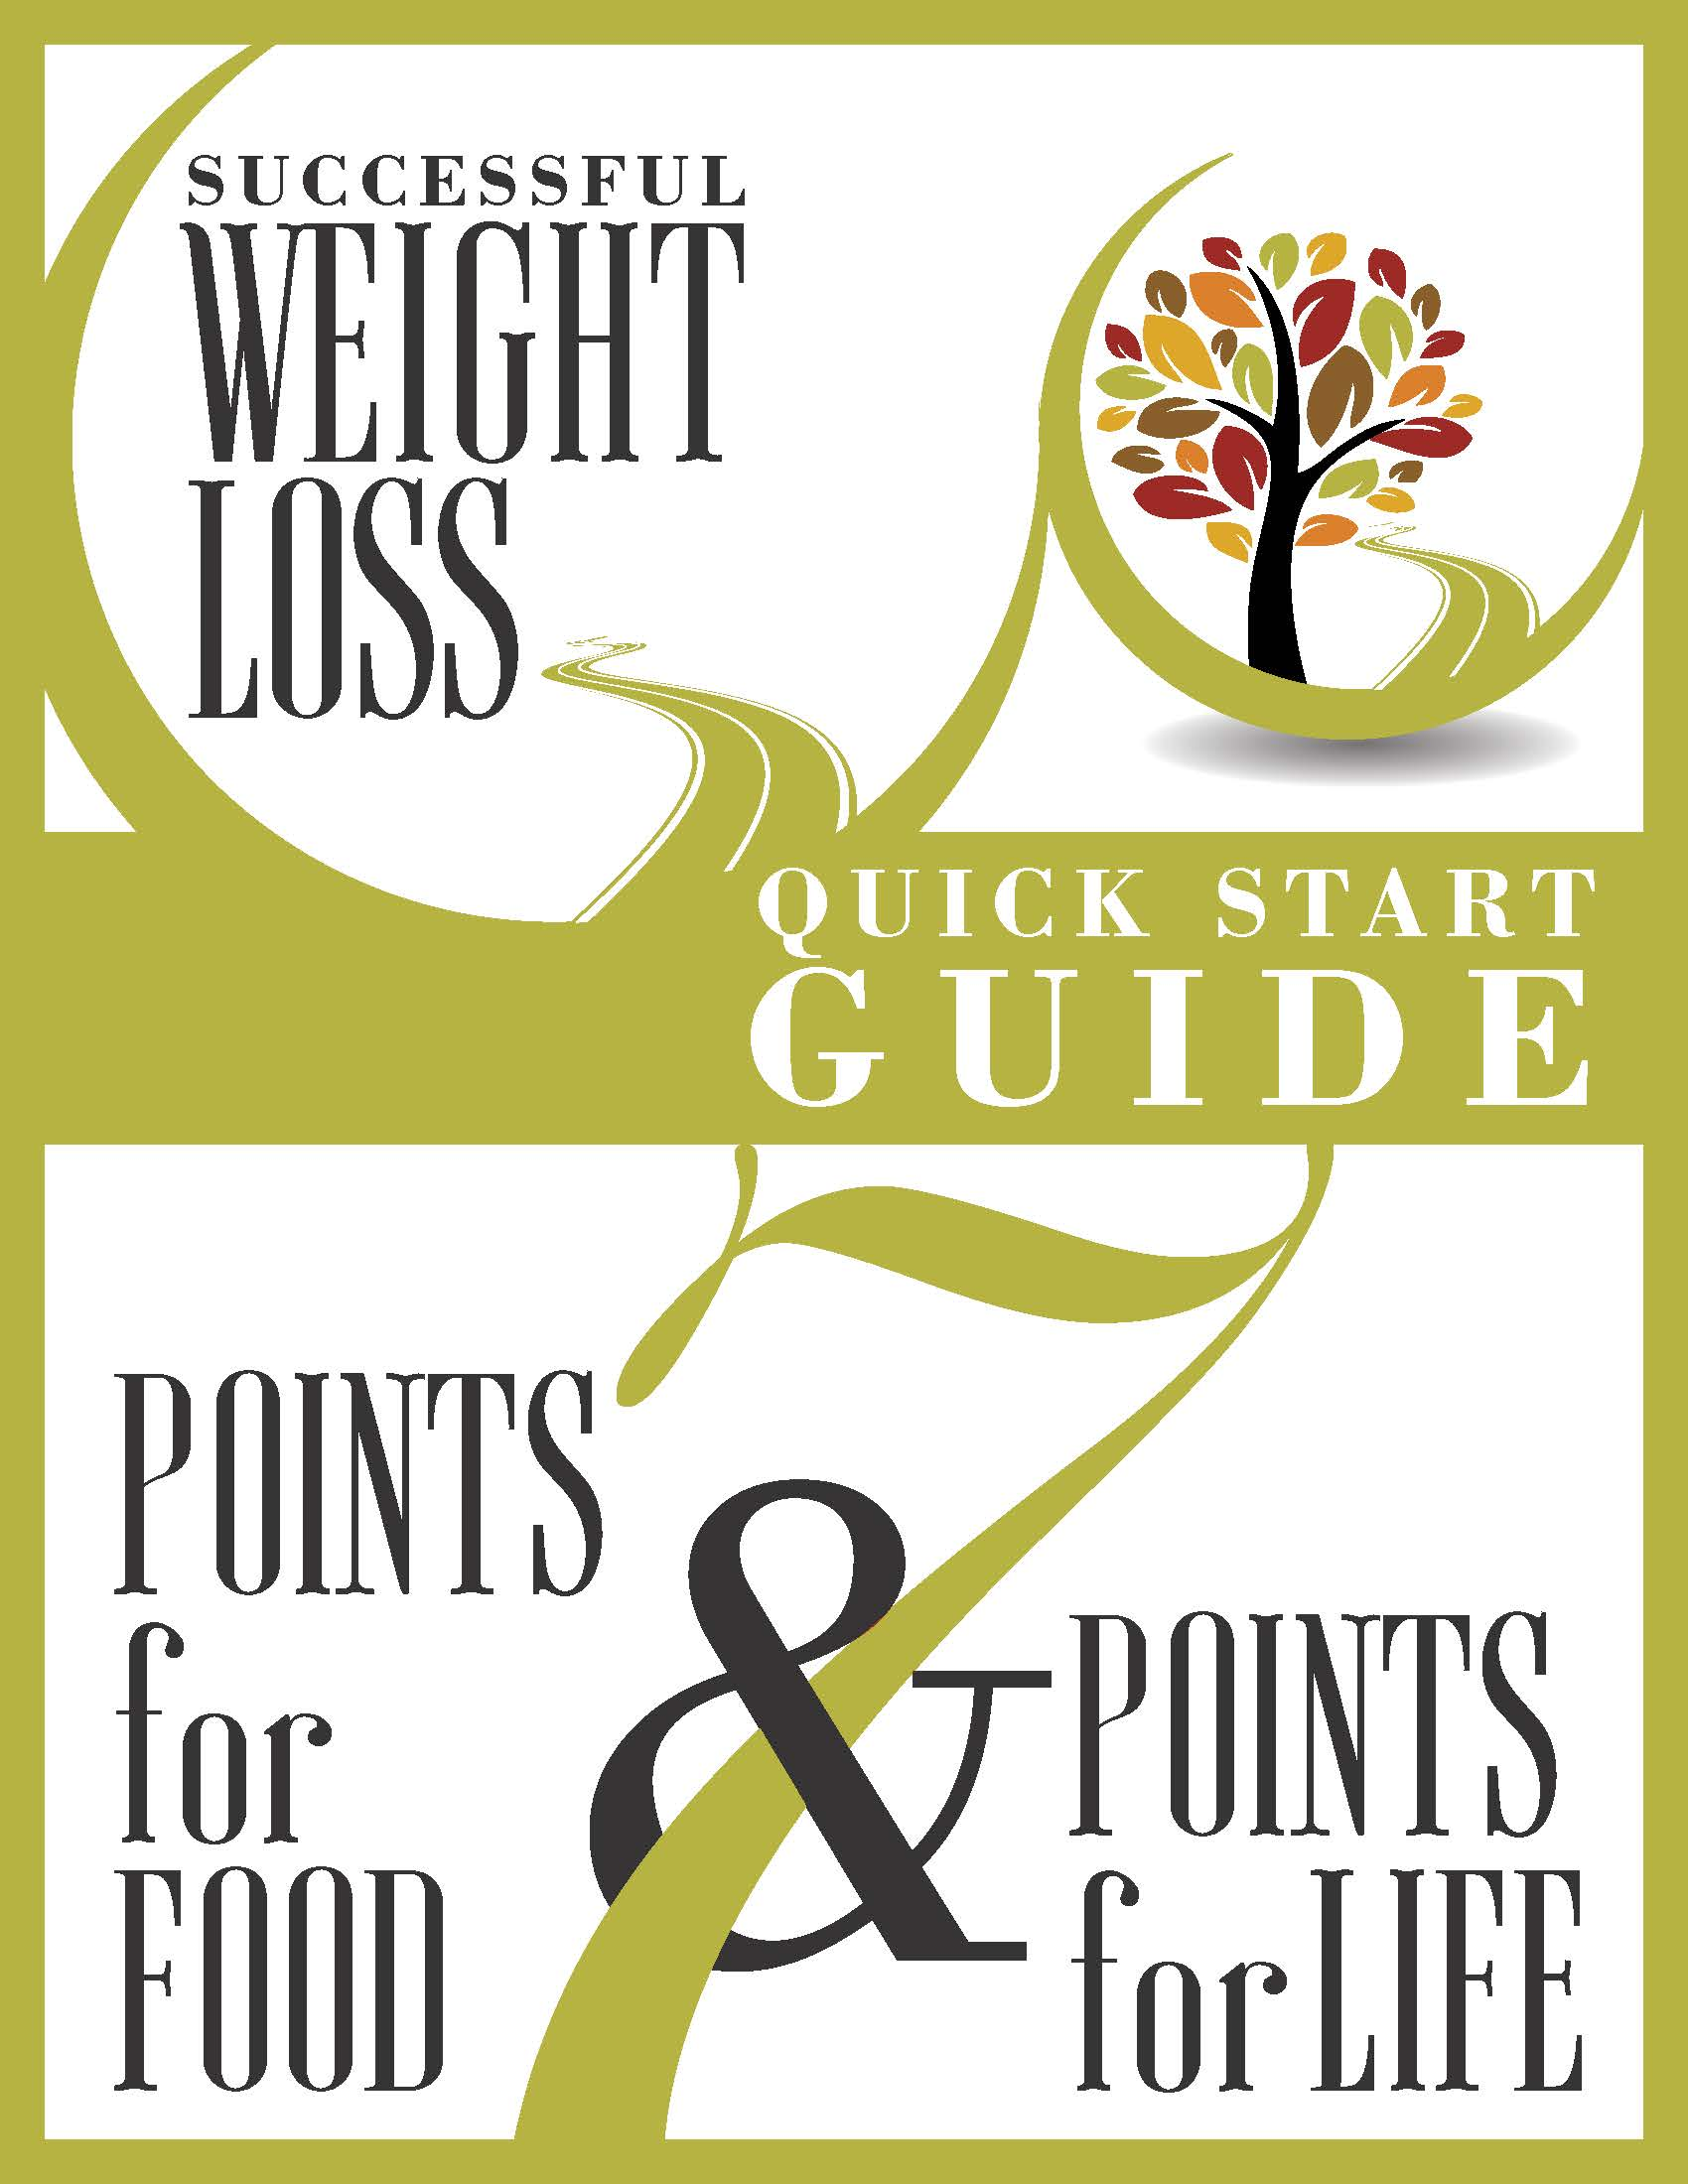 - Grab Your Quick Start Guide - Successful Planning makes all the difference!